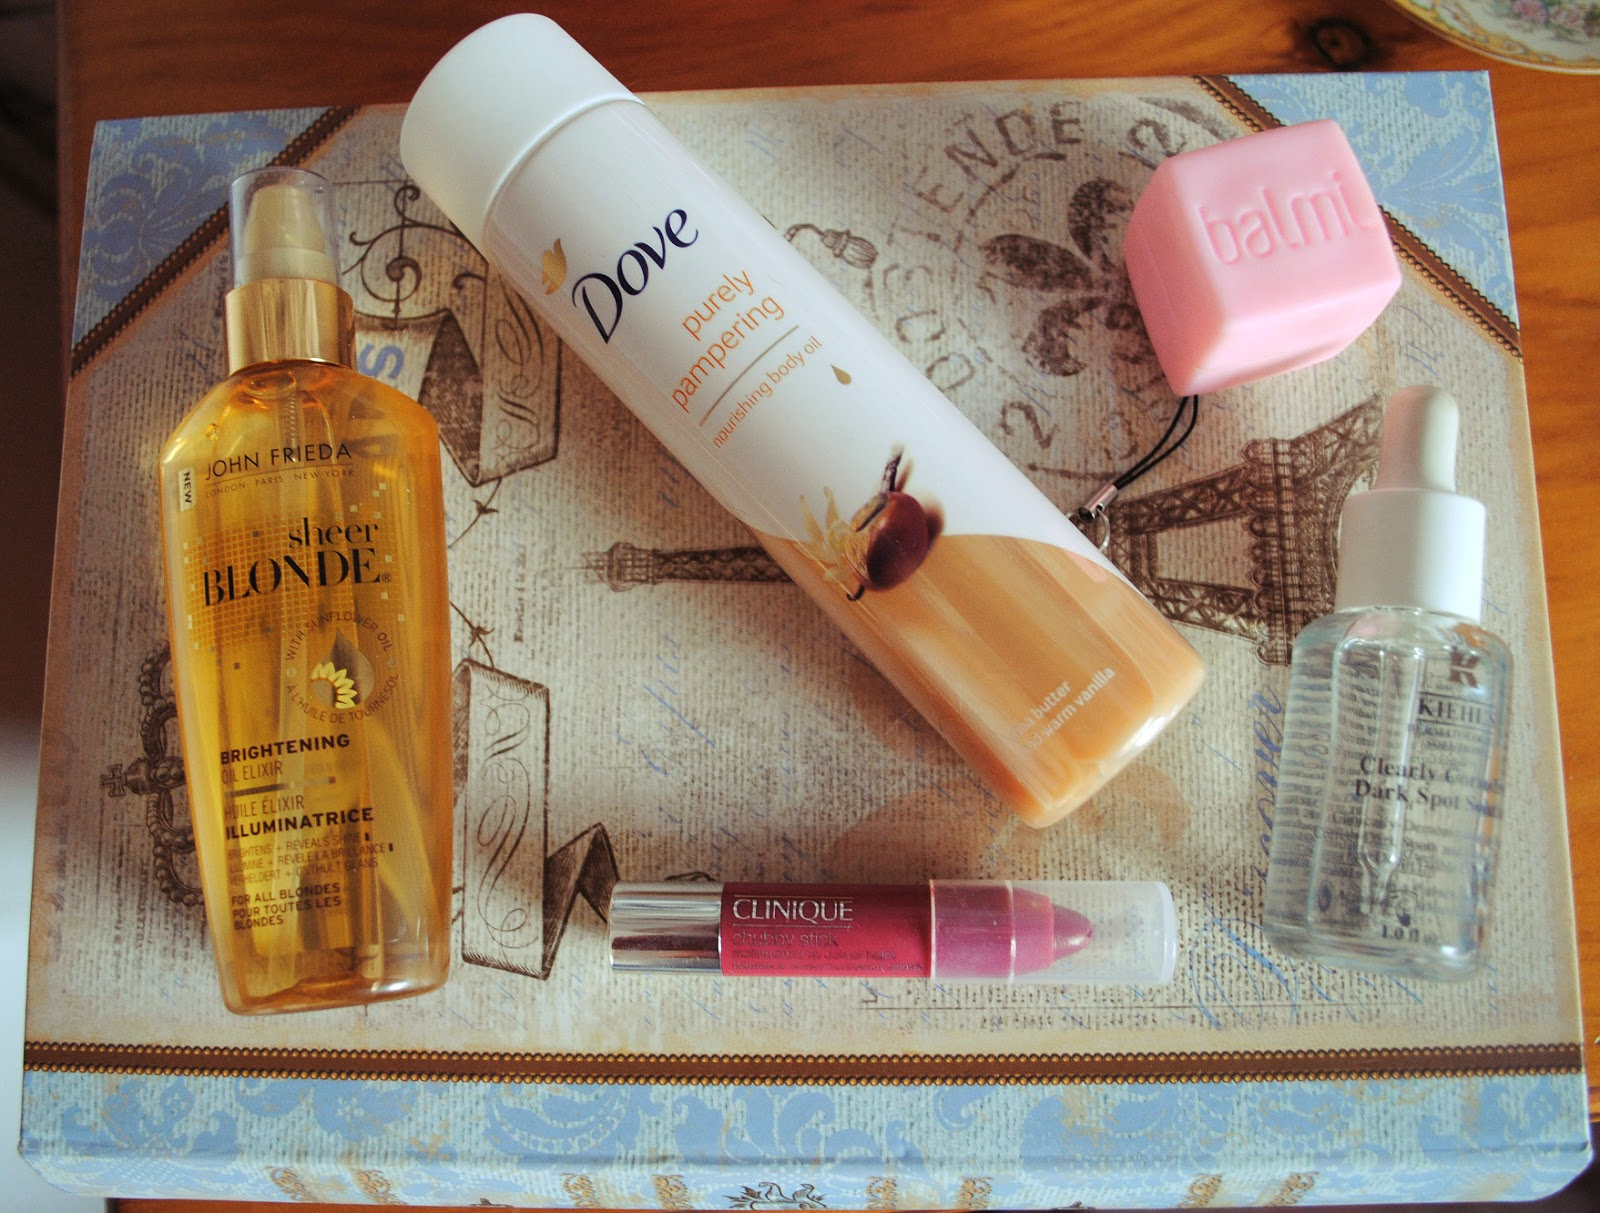 beauty edit favourites john frieda sheer blonde dove body oil clinique chubby stick balmi kheil's dark spot solution